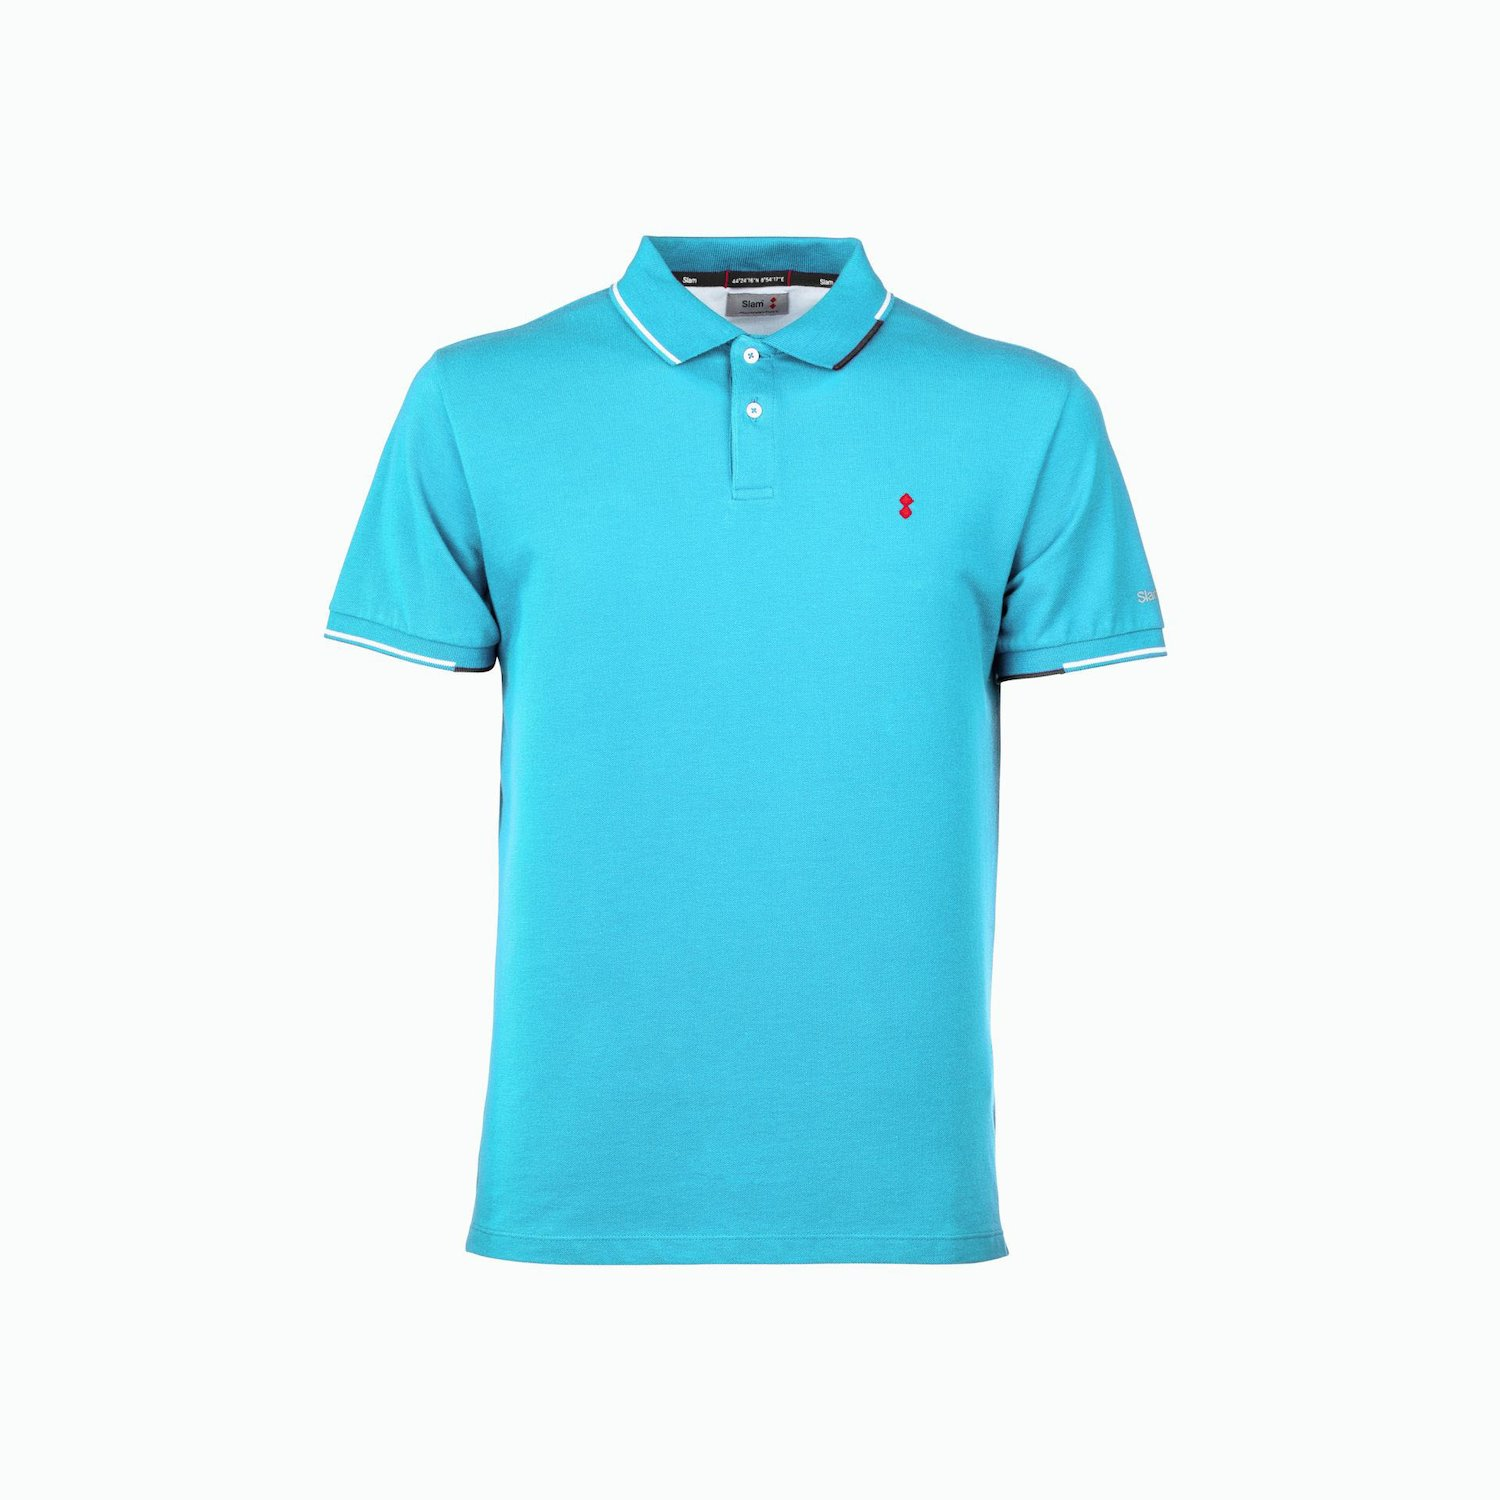 New Stern Polo - Atoll Blue